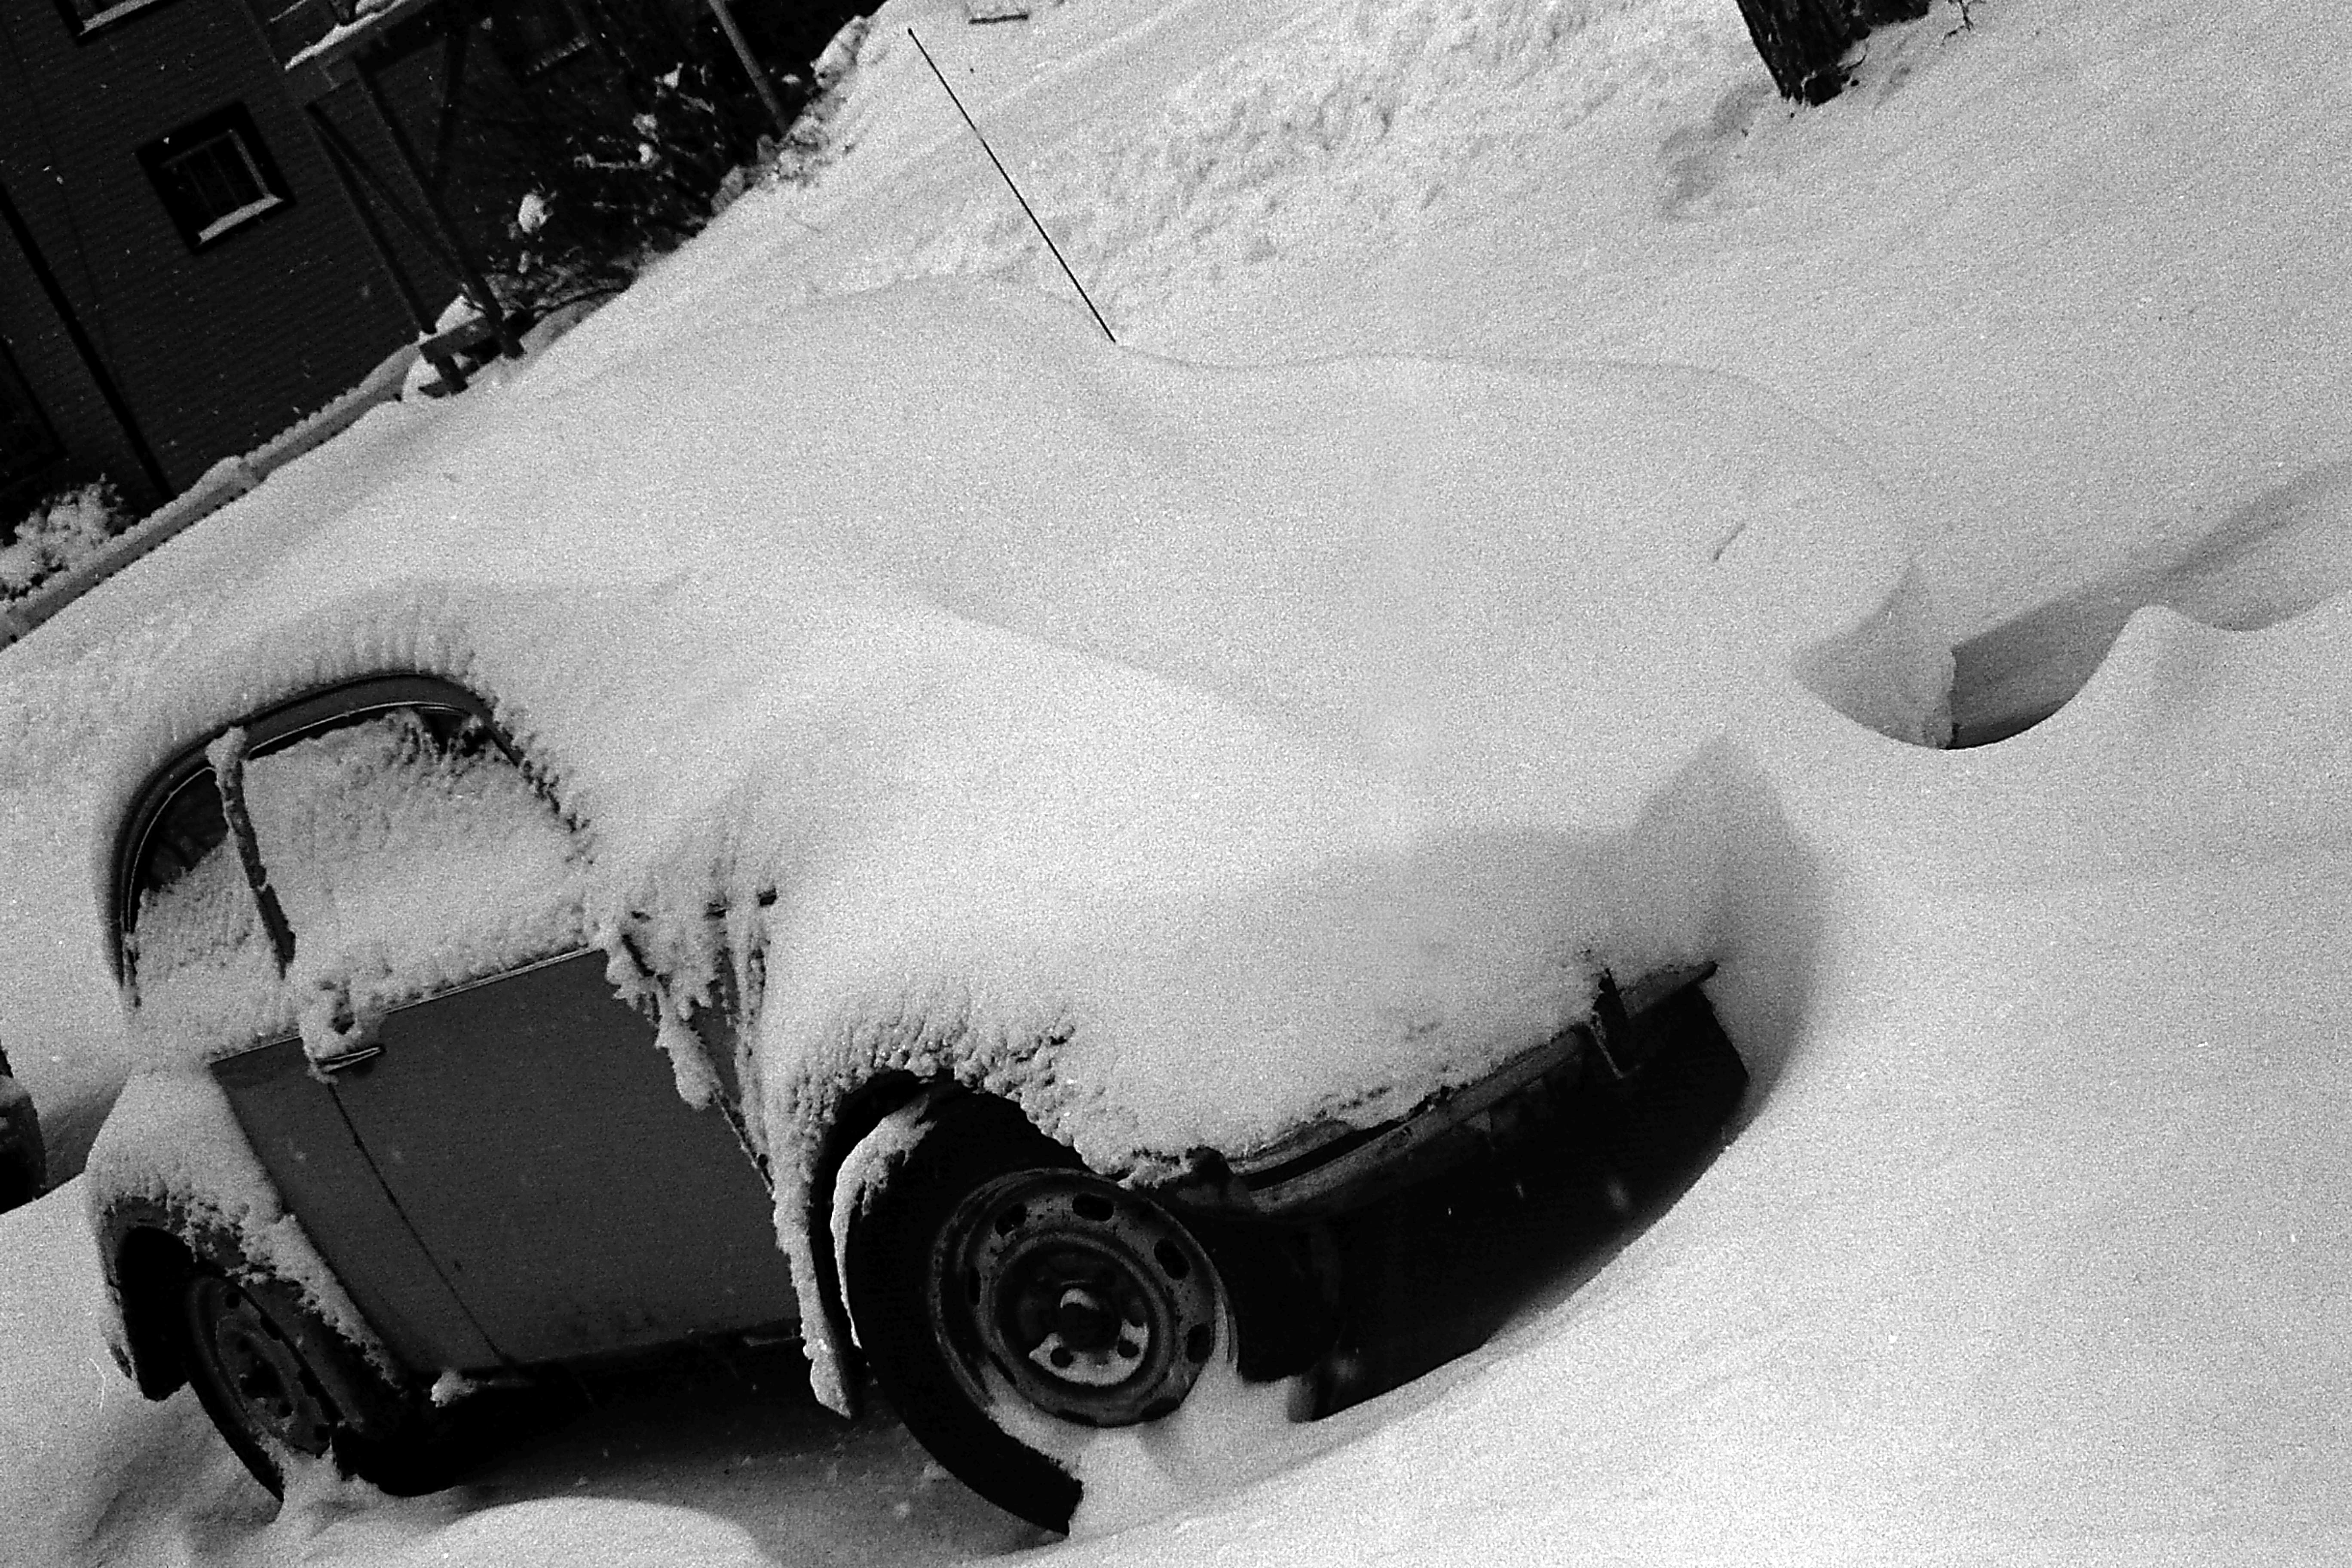 VW Beetle During Great Blizzard, January 1978 image